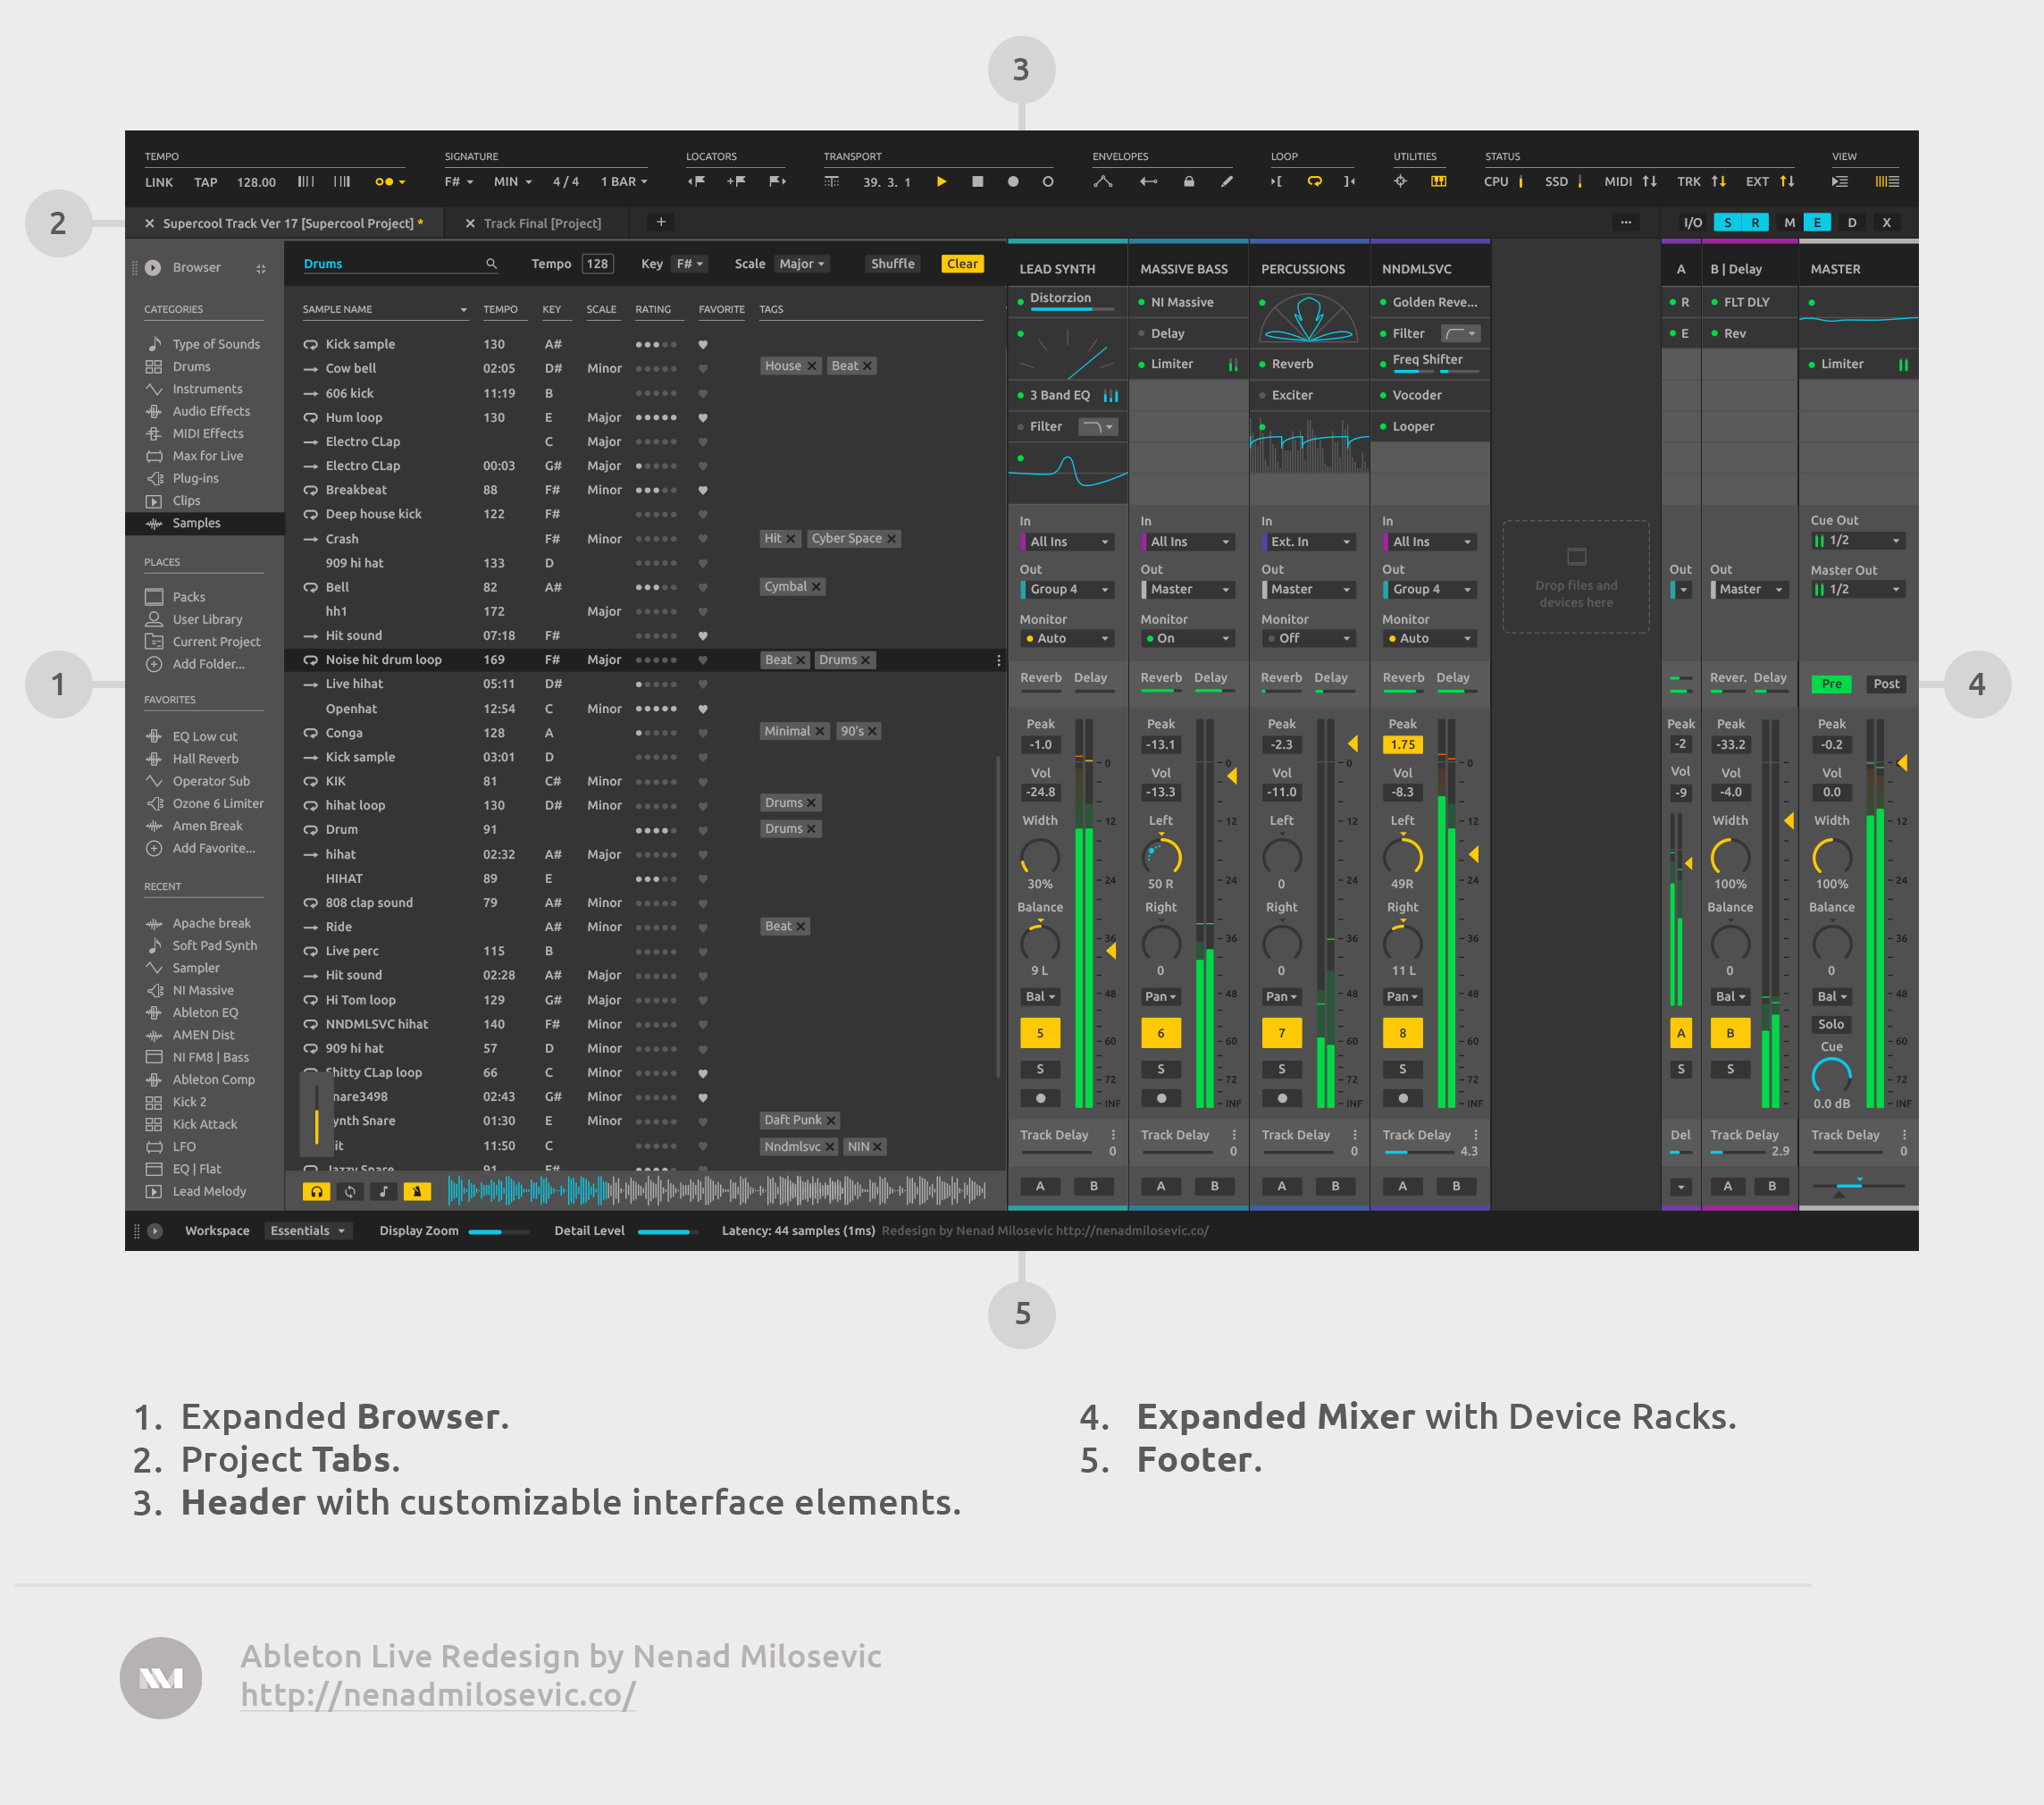 Expanded Browser and Expanded Mixer screen.